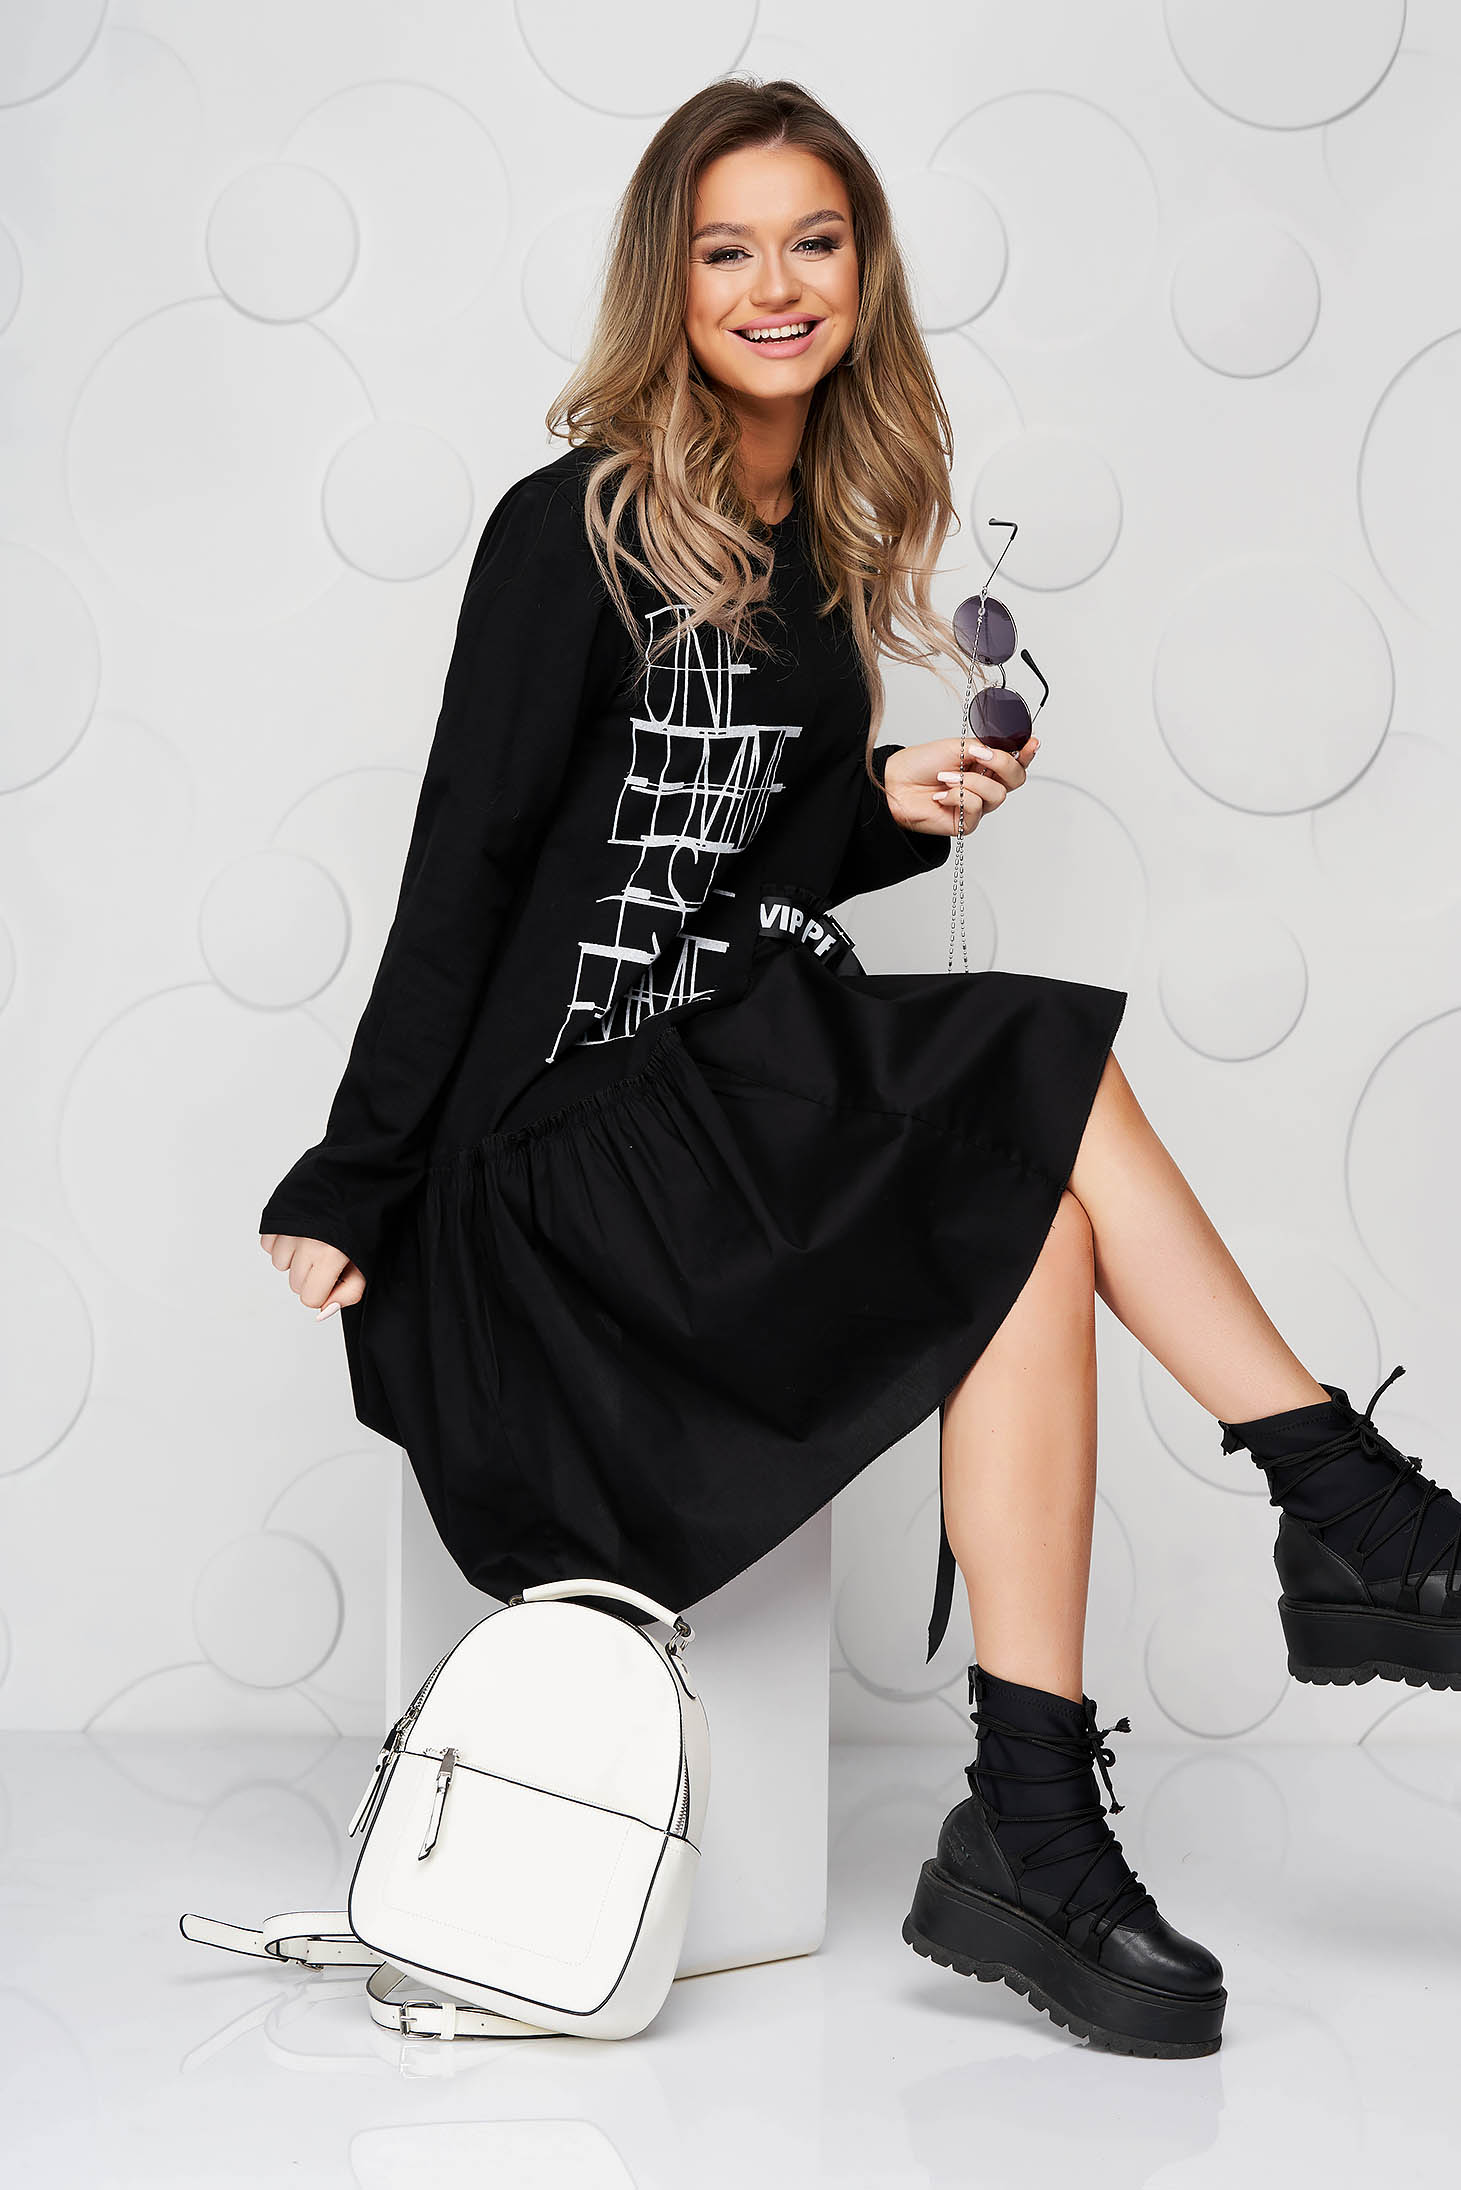 Black dress elastic cotton with ruffle details loose fit with graphic details